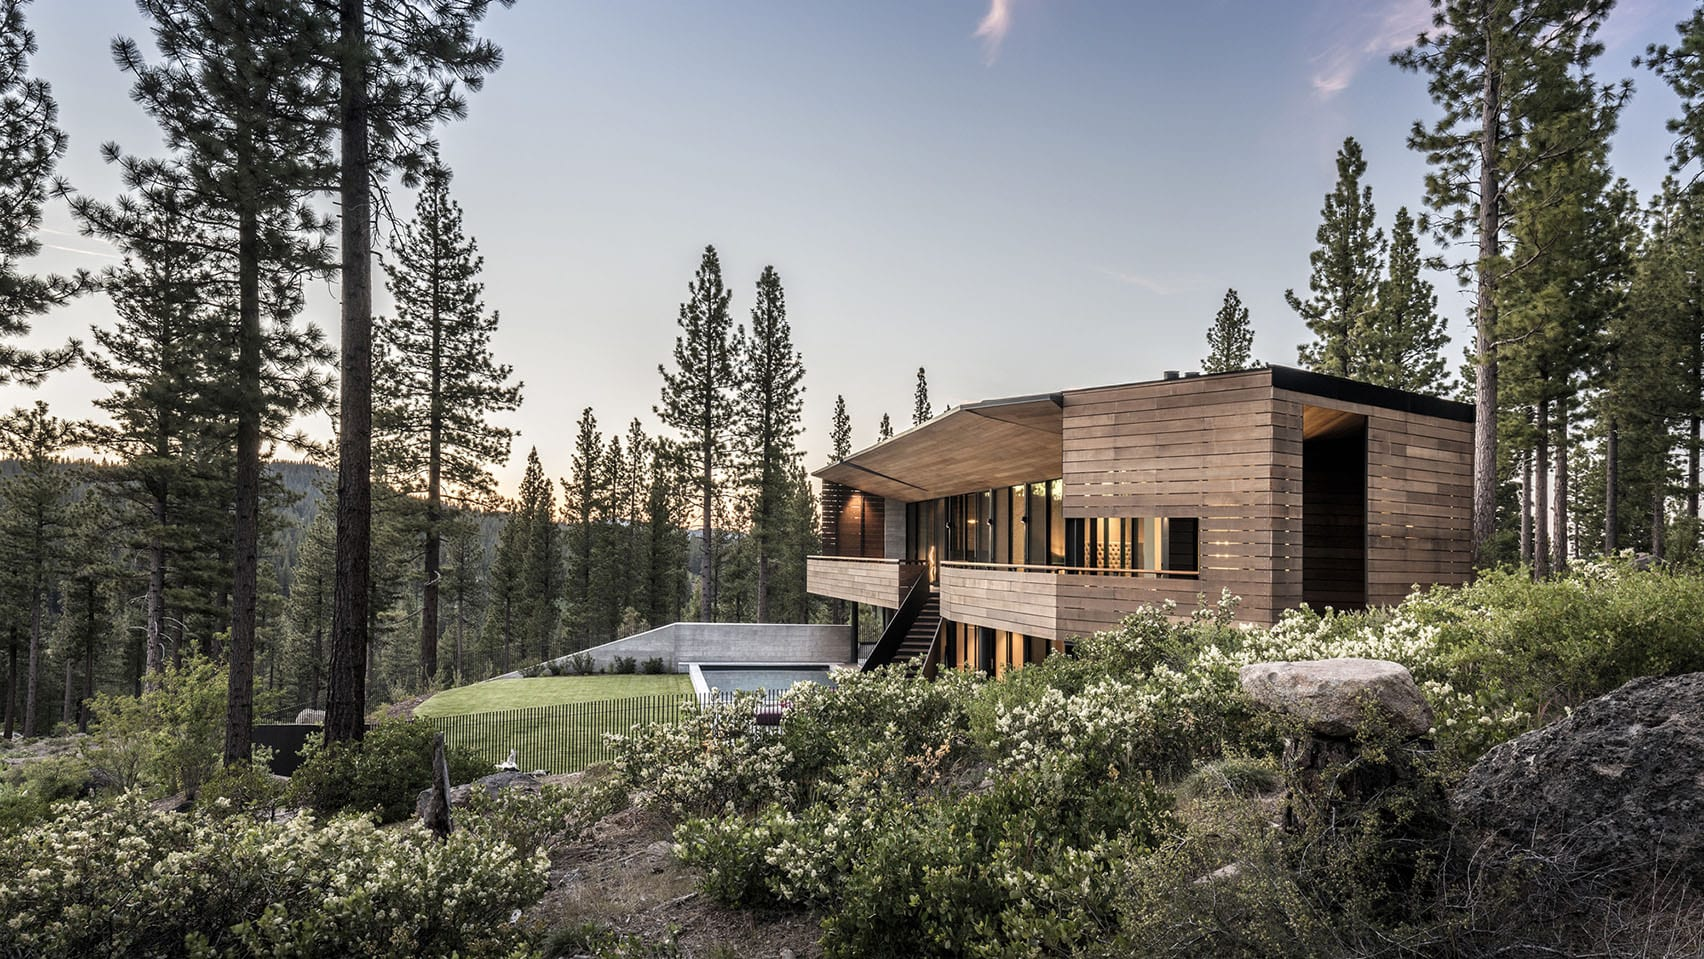 Viewfinder House by Faulkner Architects faces Pacific Crest vista